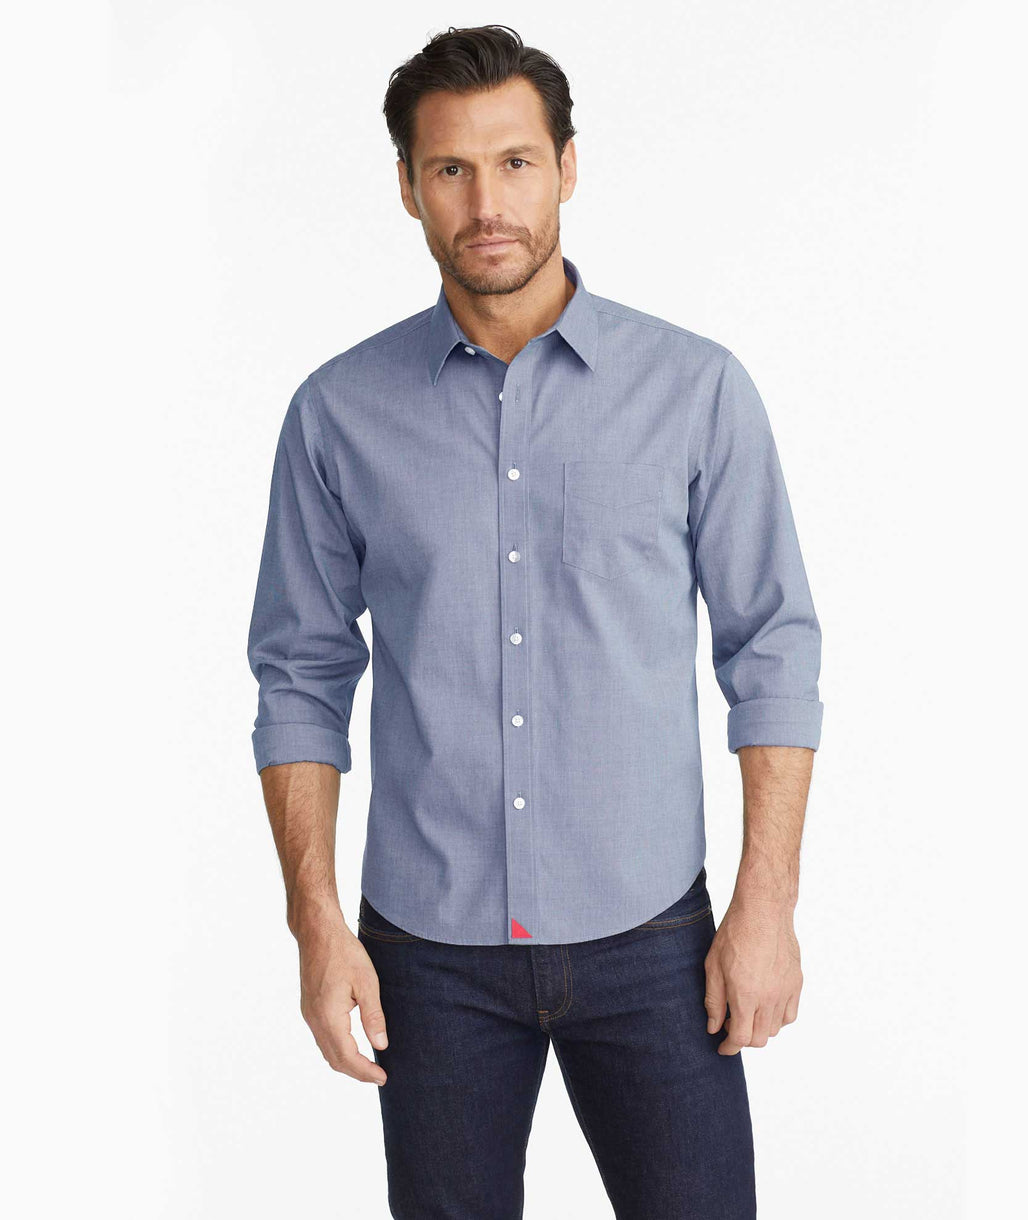 Model wearing a Navy Wrinkle-Free Pio Cesare Shirt